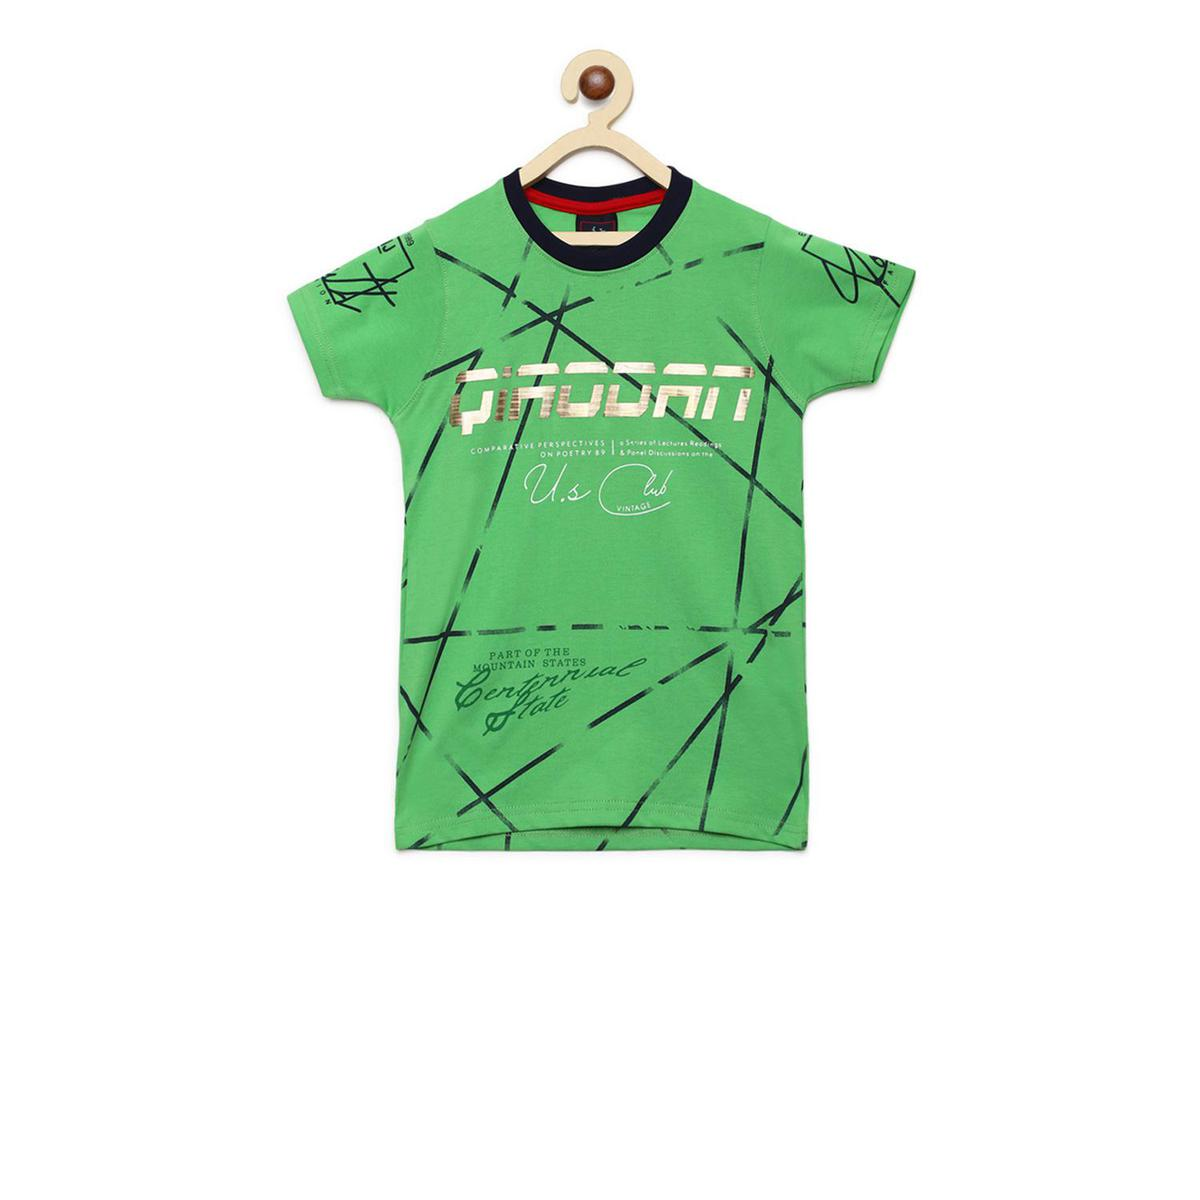 Fabnest - Green Colored Casual Round Neck Graphic Print Cotton T-shirt For Boys